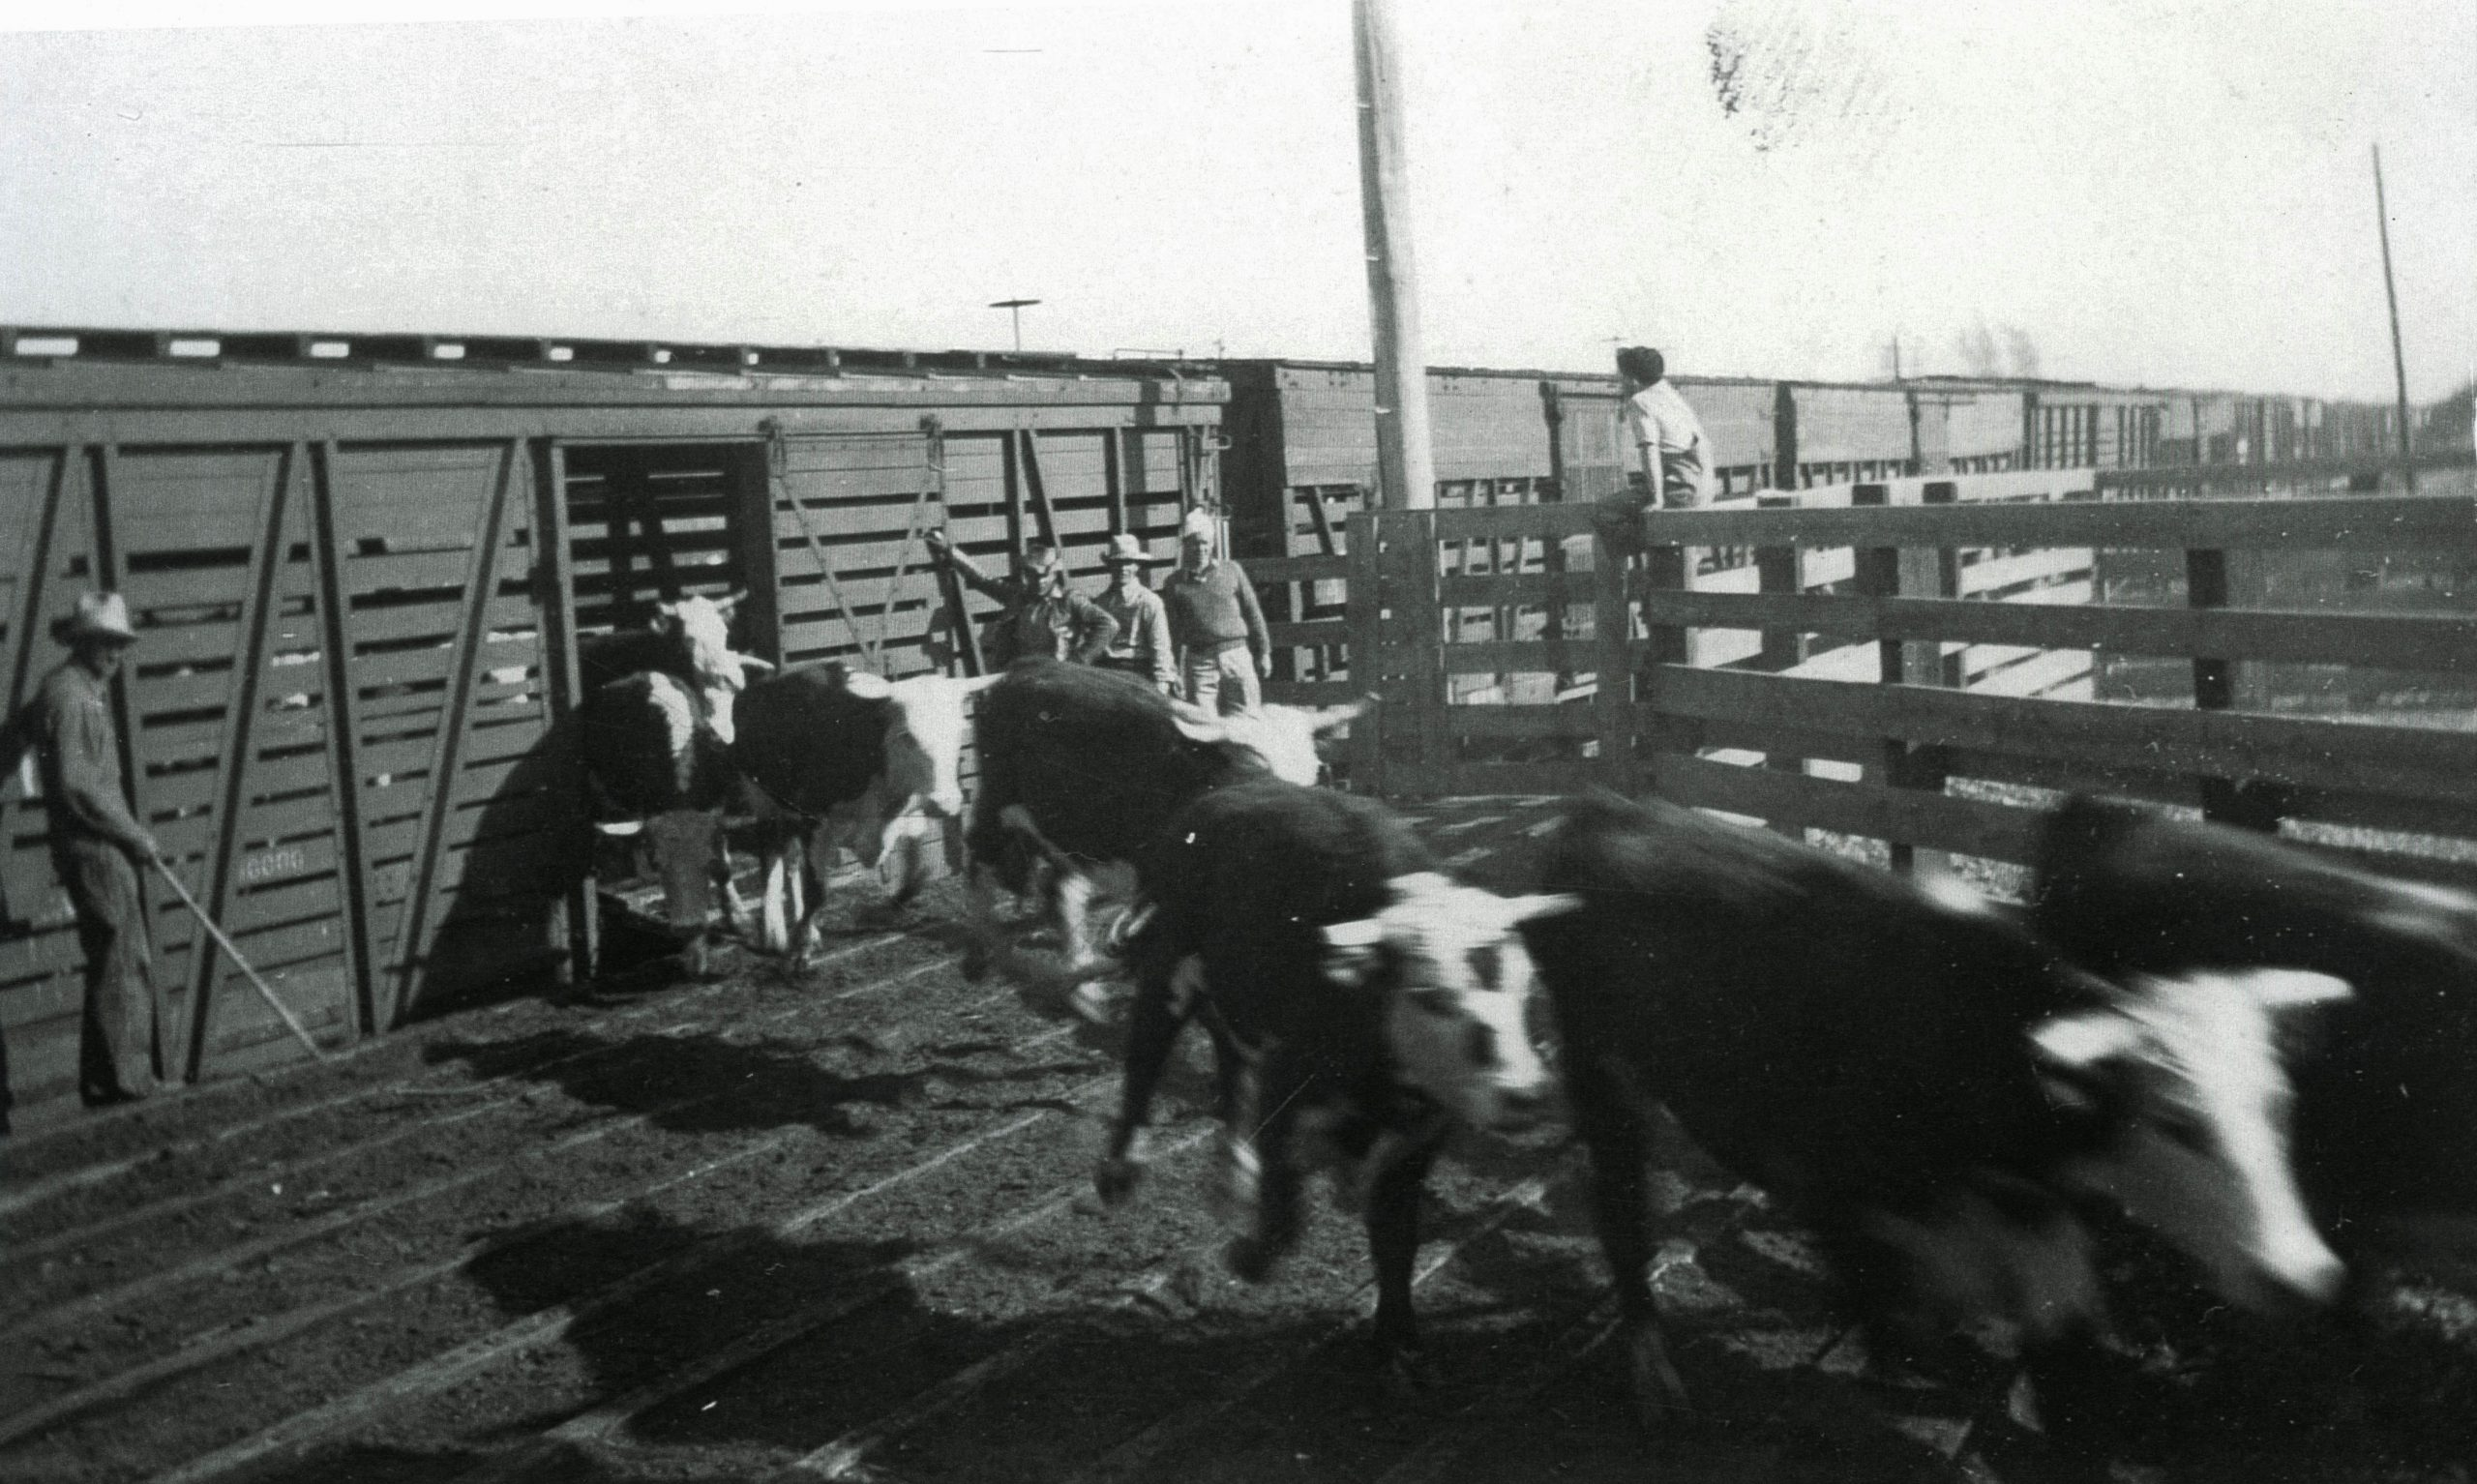 Cattle being unloaded from railroad cars